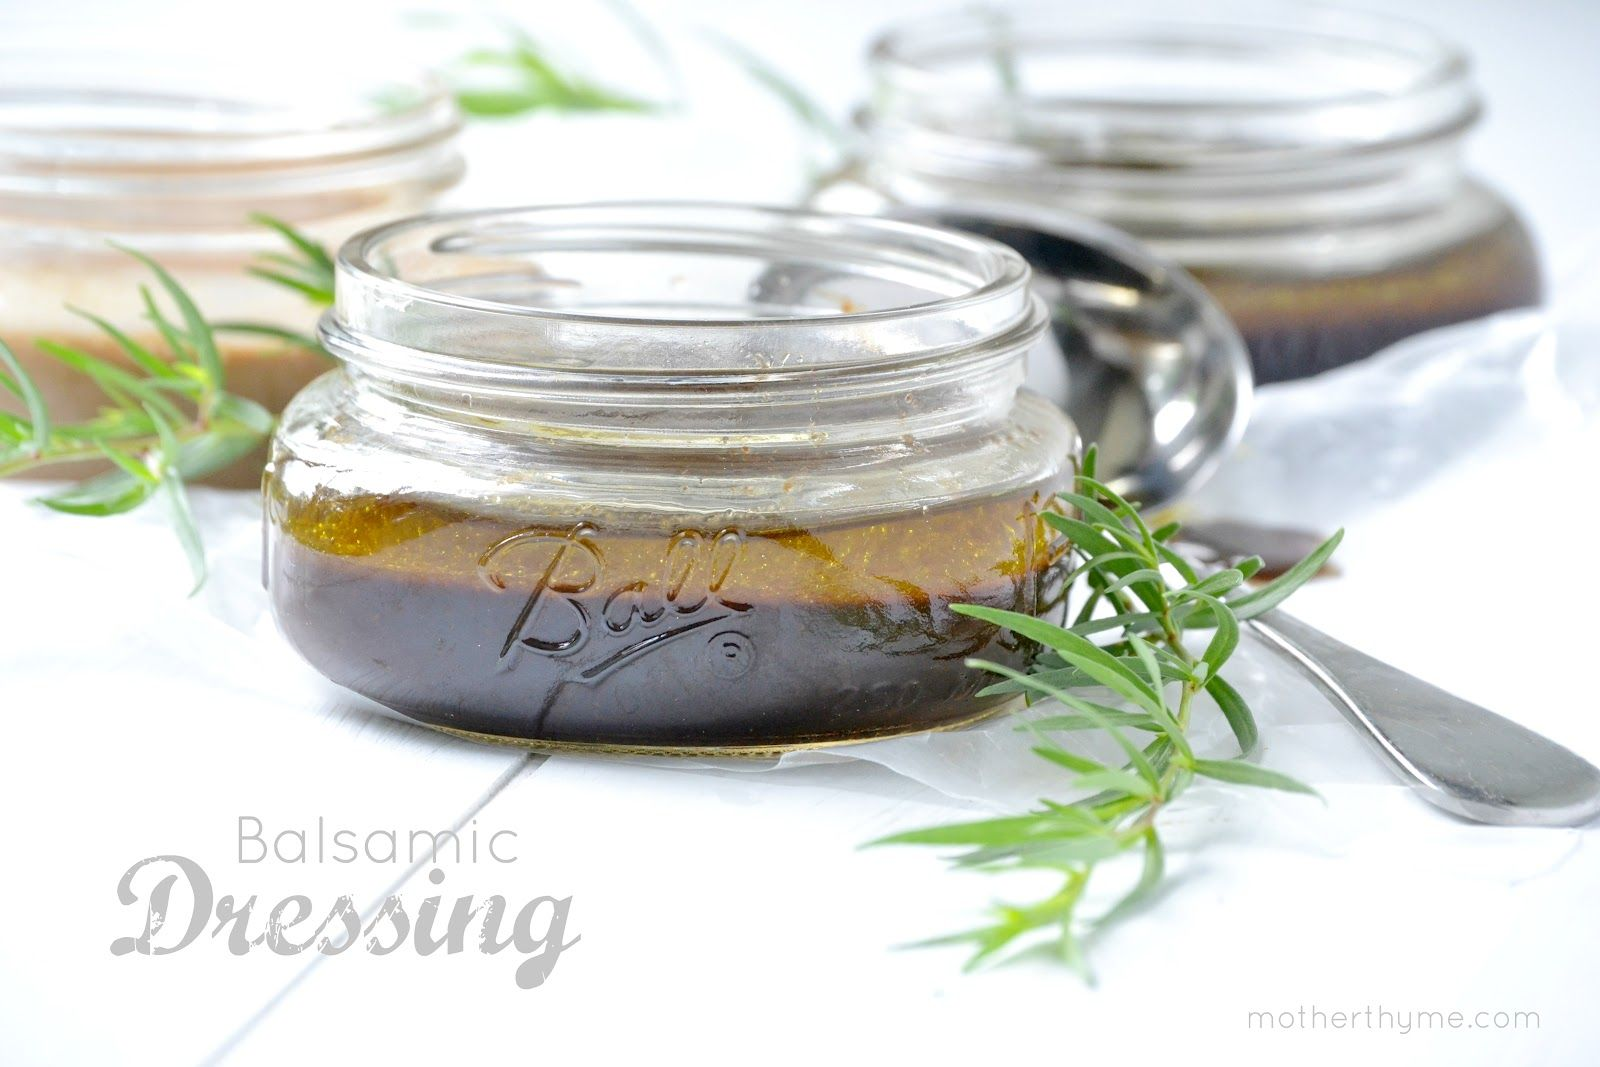 balsamic dressing | mother thyme